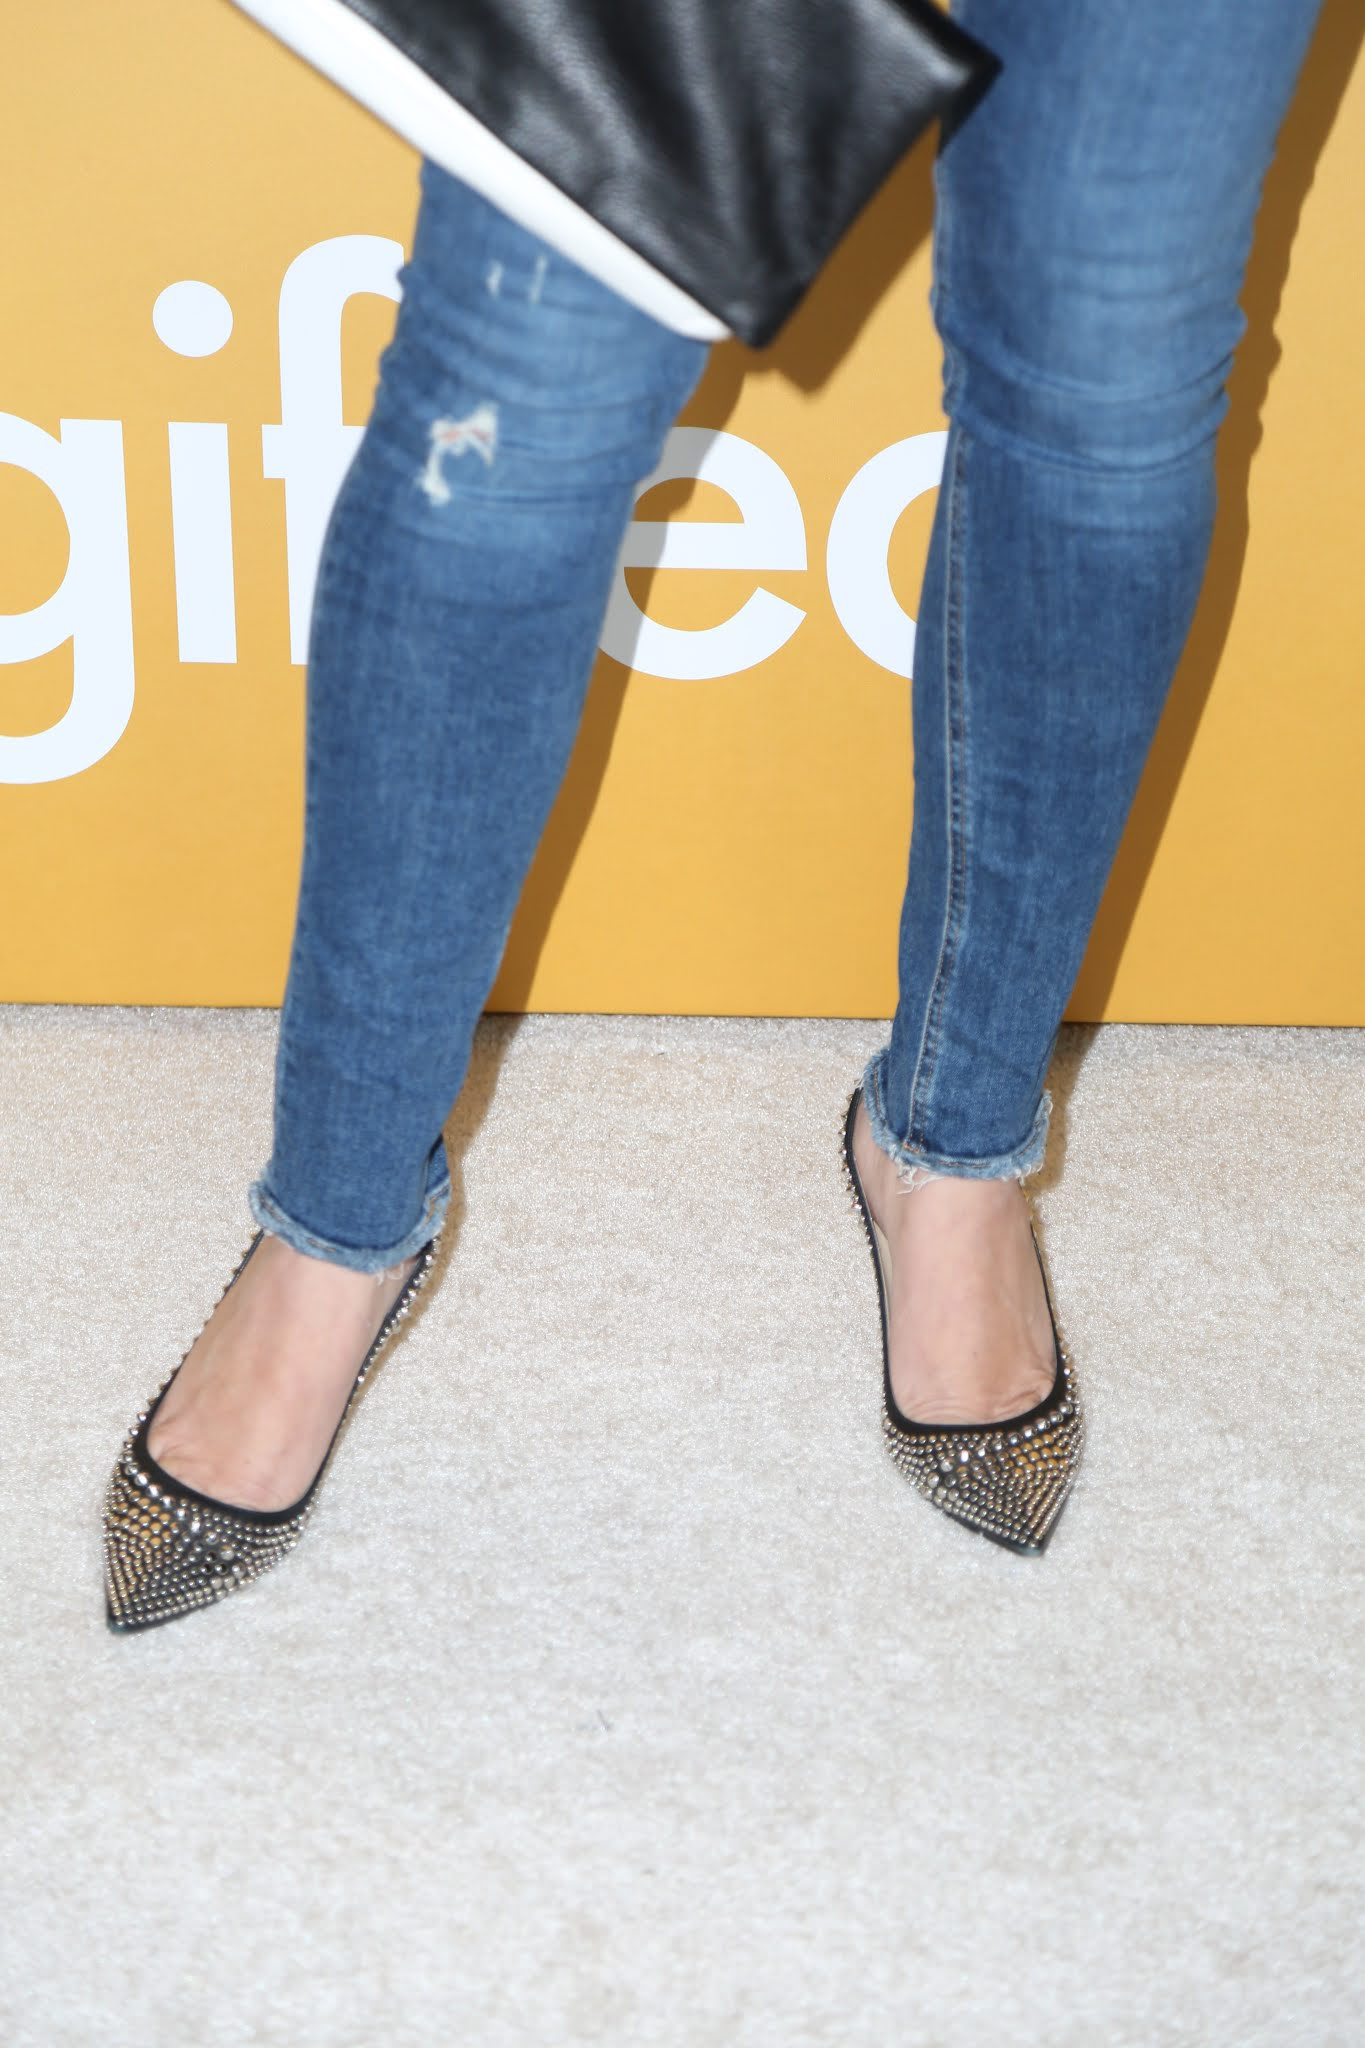 Remarkable, Tiffani amber thiessen toes